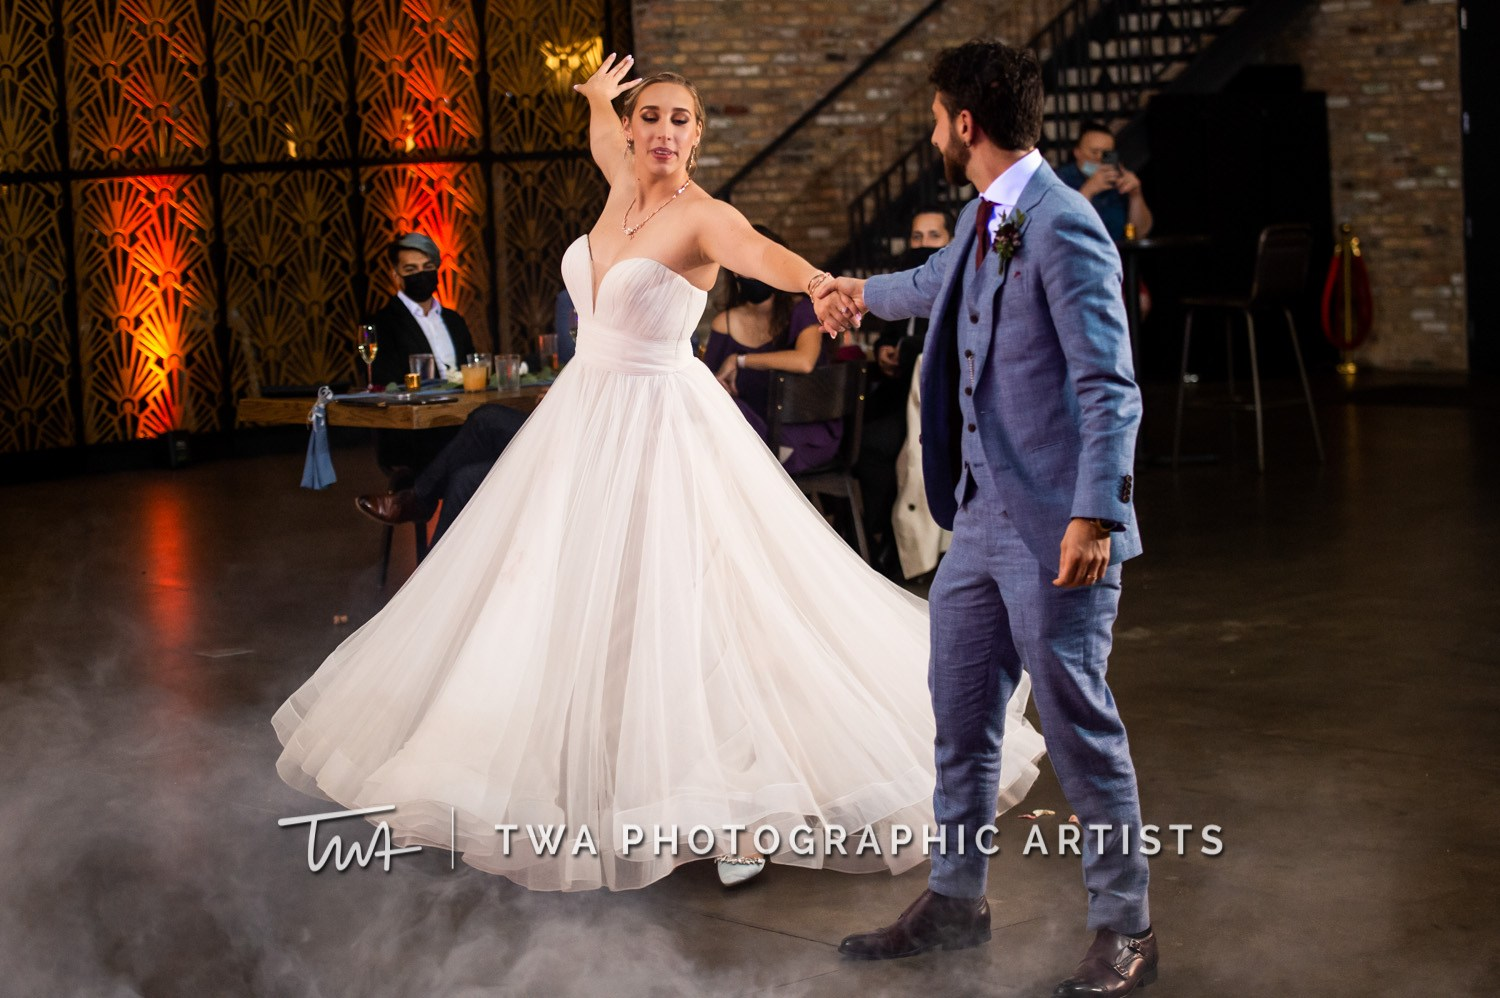 Chicago-Wedding-Photographer-TWA-Photographic-Artists-City-Hall-Event_Masterova_Alkhateeb_AA-0586